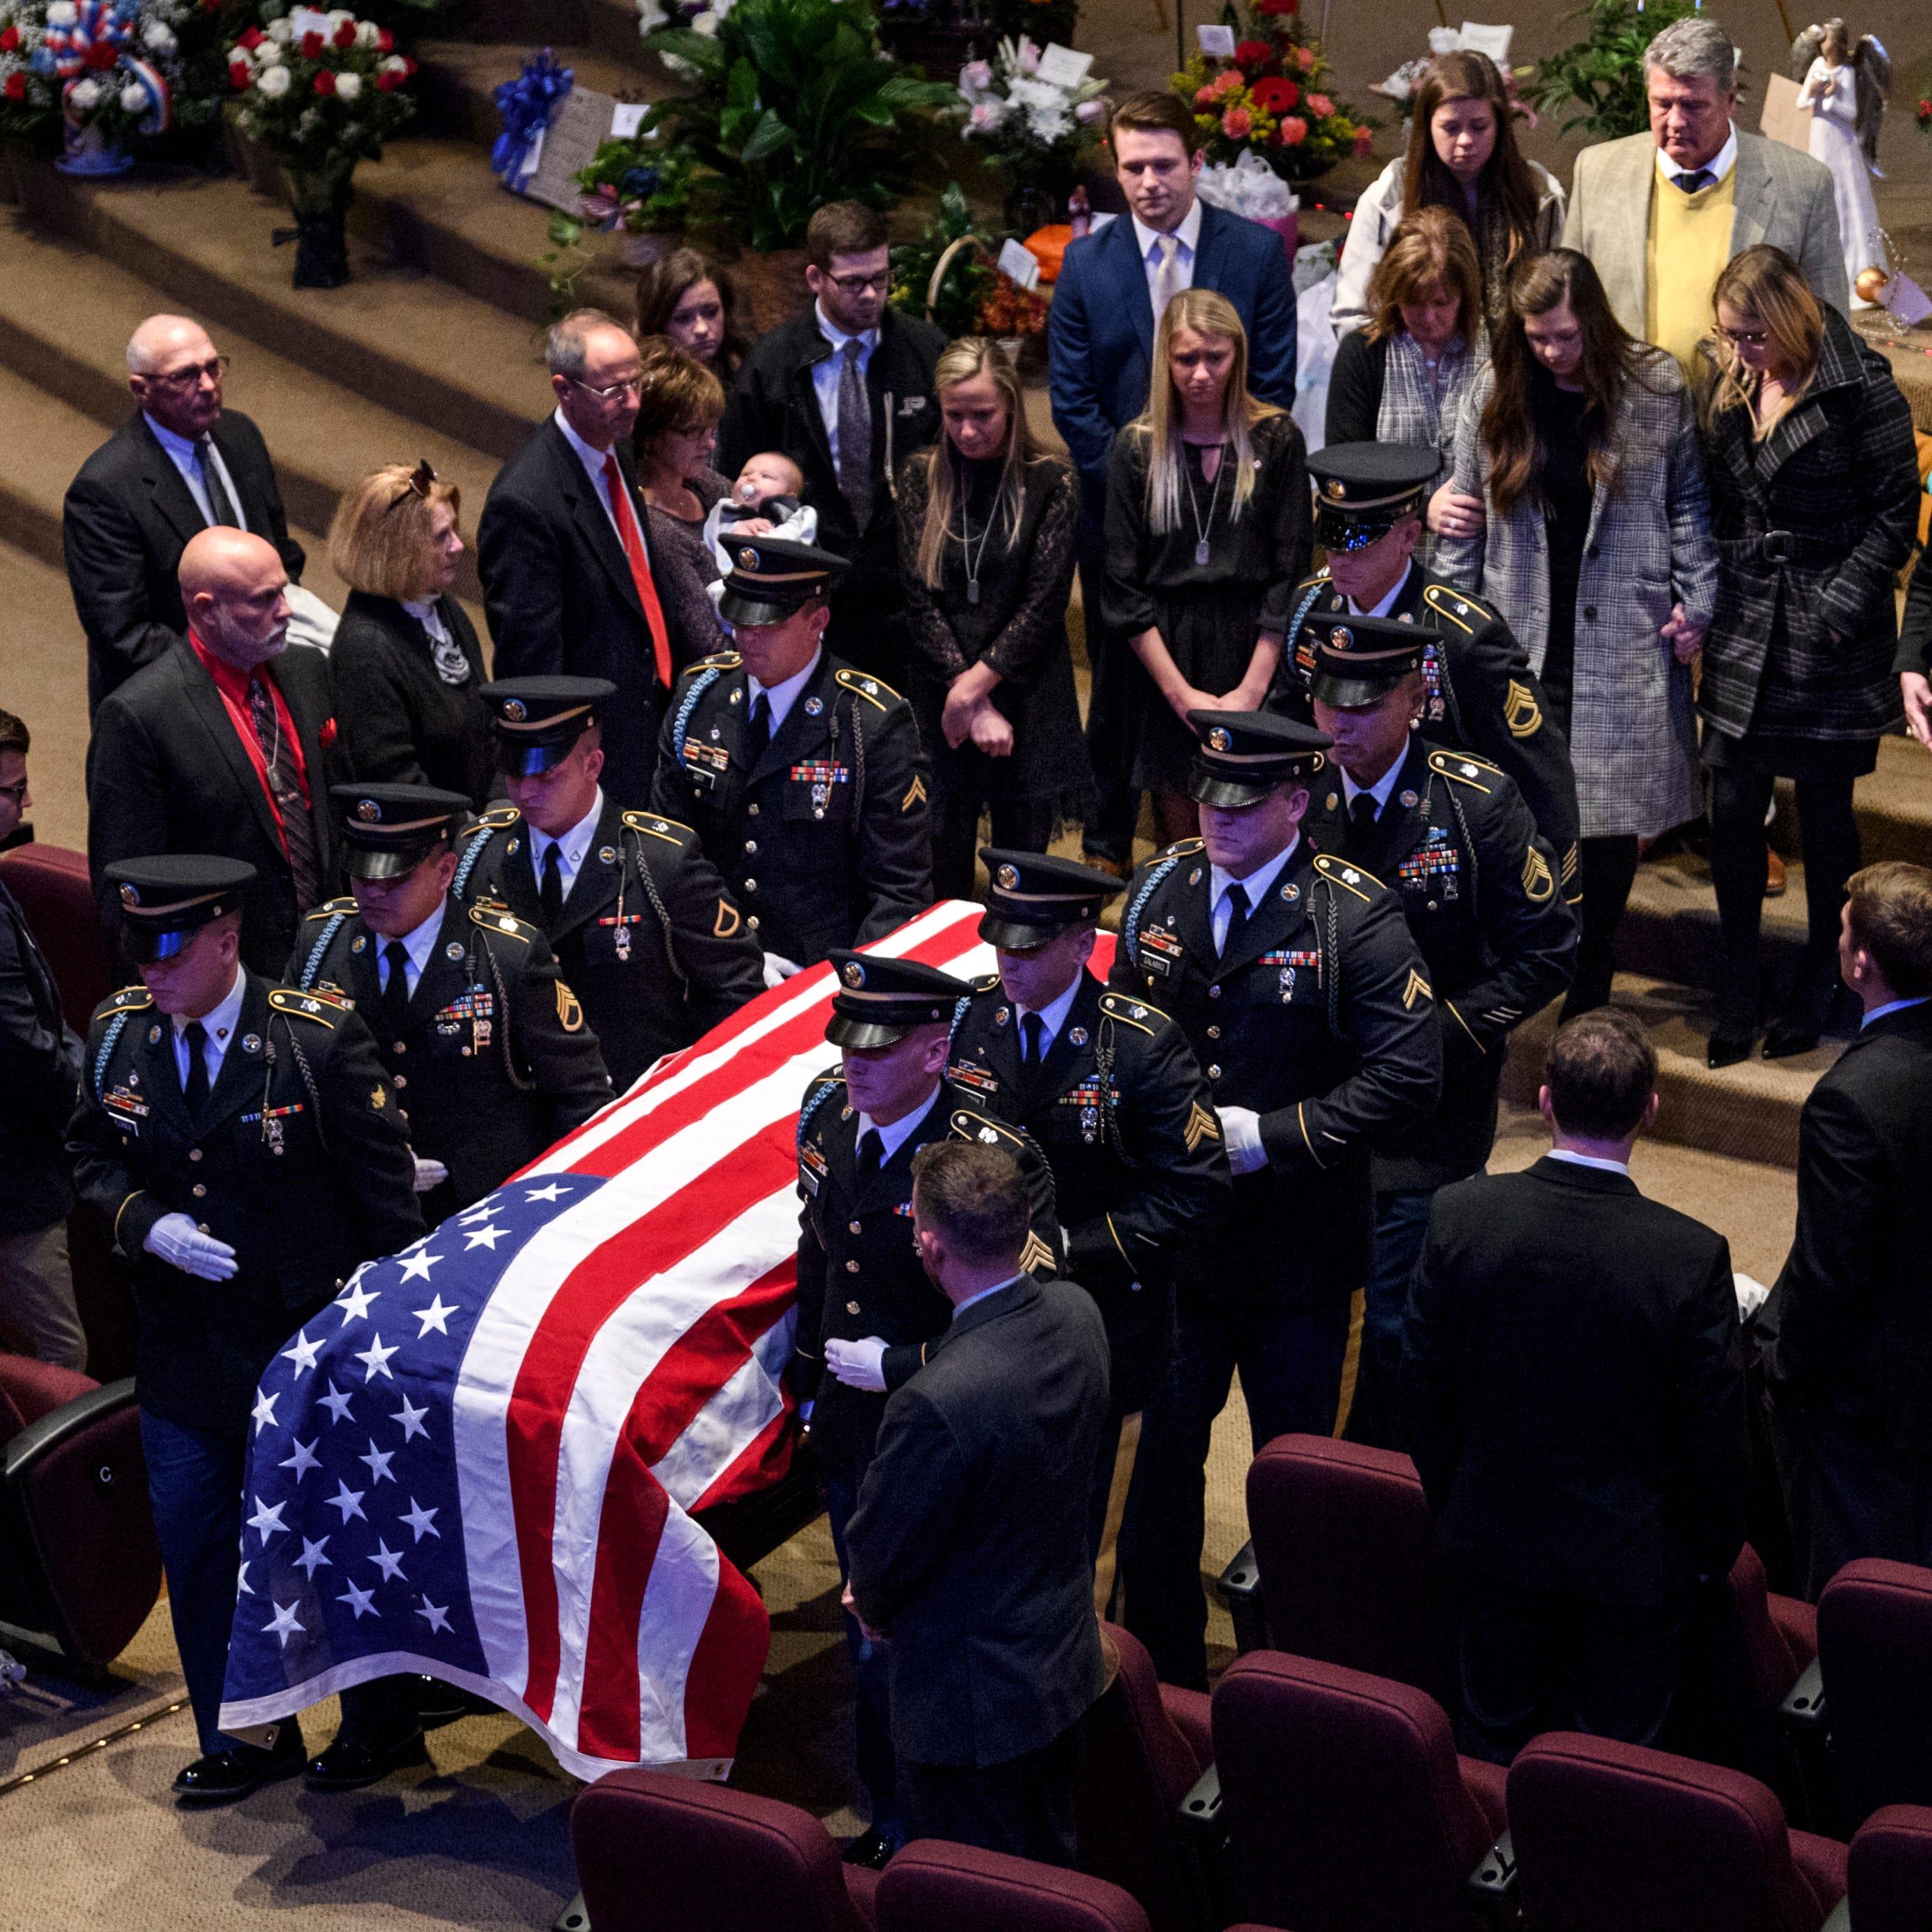 """Army Sgt. Drew Watters' casket is carried out of the chapel as his family follows close behind at Christian Fellowship Church during a """"Celebration of Life"""" ceremony in Evansville, Ind., Wednesday afternoon, Nov. 14, 2018. The 23-year-old Evansville native died in a military training accident at Joint Base Lewis-McChord, Sunday, November 4."""